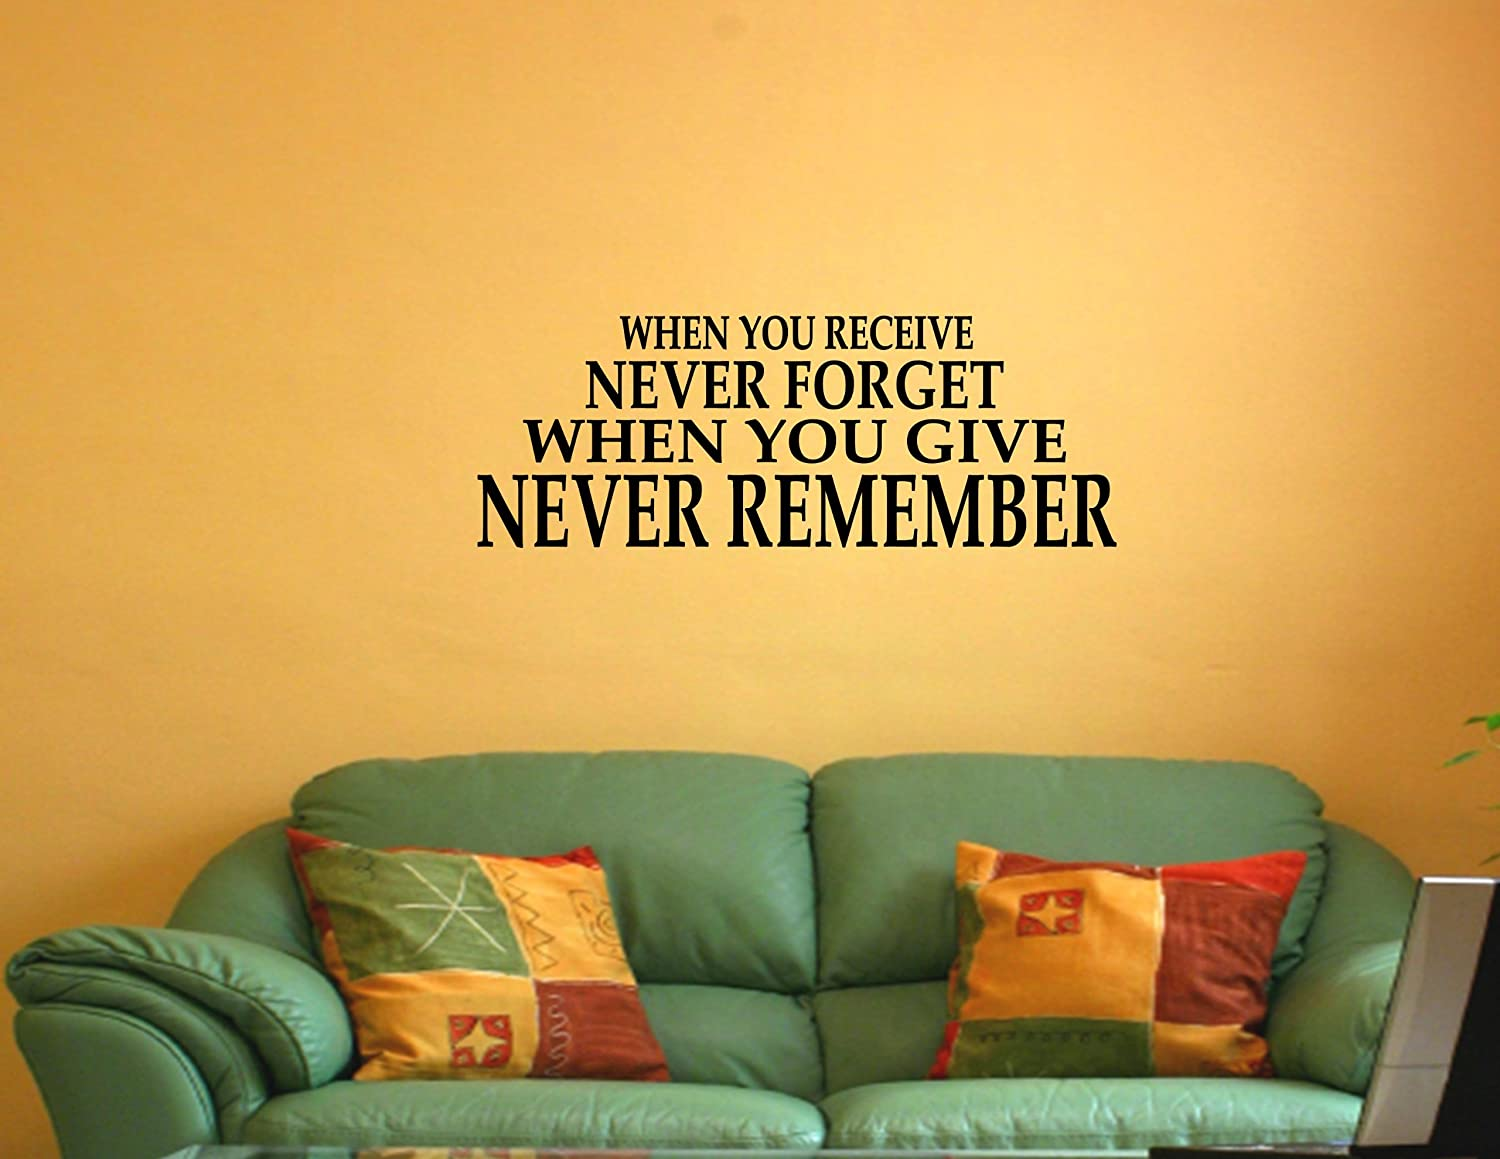 Amazon.com: WHEN YOU RECEIVE NEVER FORGET WHEN YOU GIVE NEVER ...